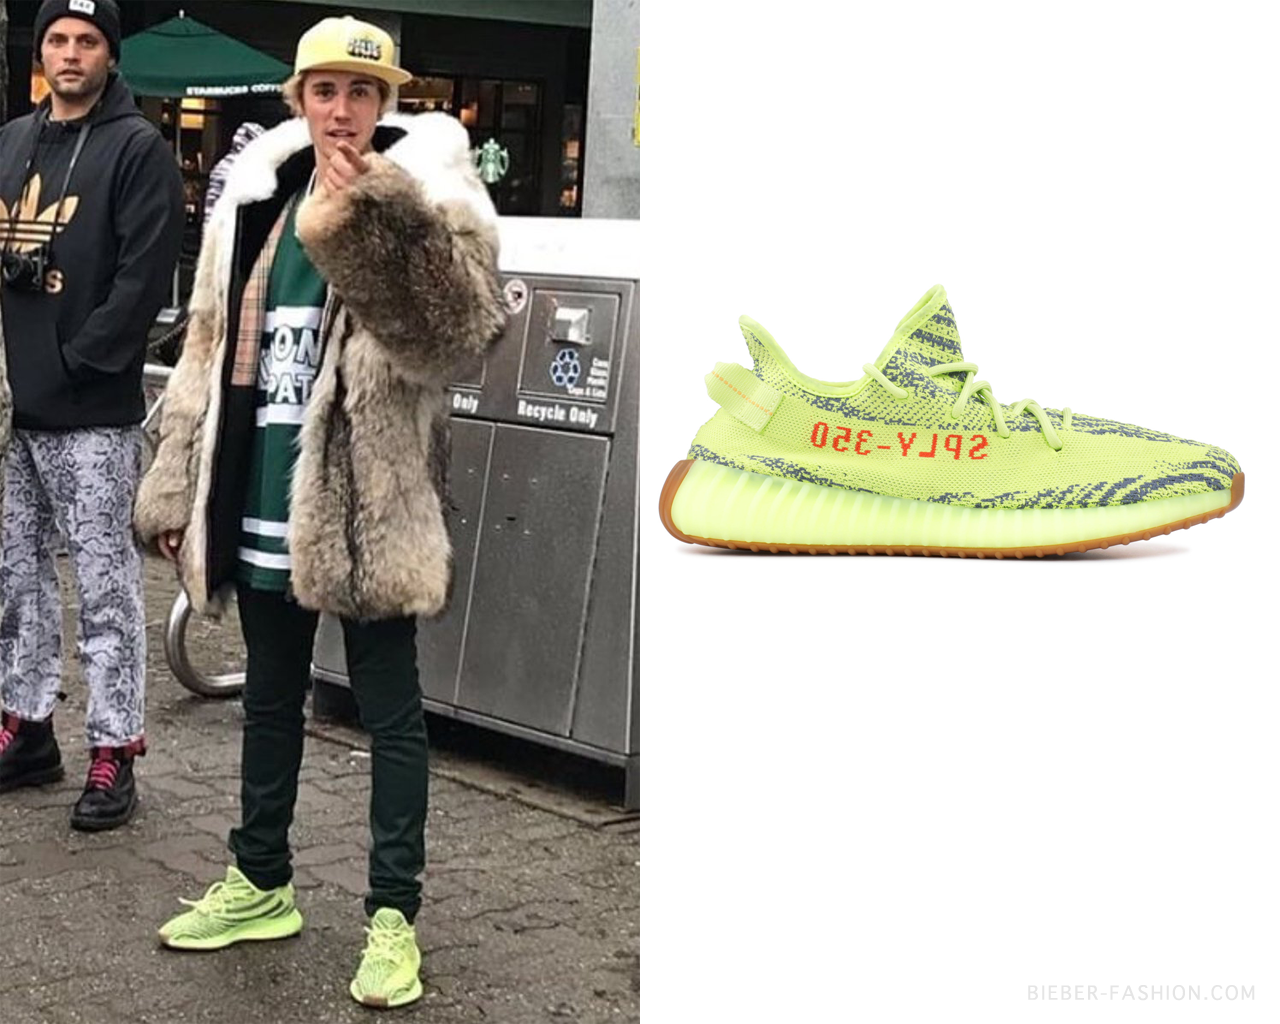 bieber,fashion \u201cAdidas Yeezy Boost 350 V2 in Semi Frozen